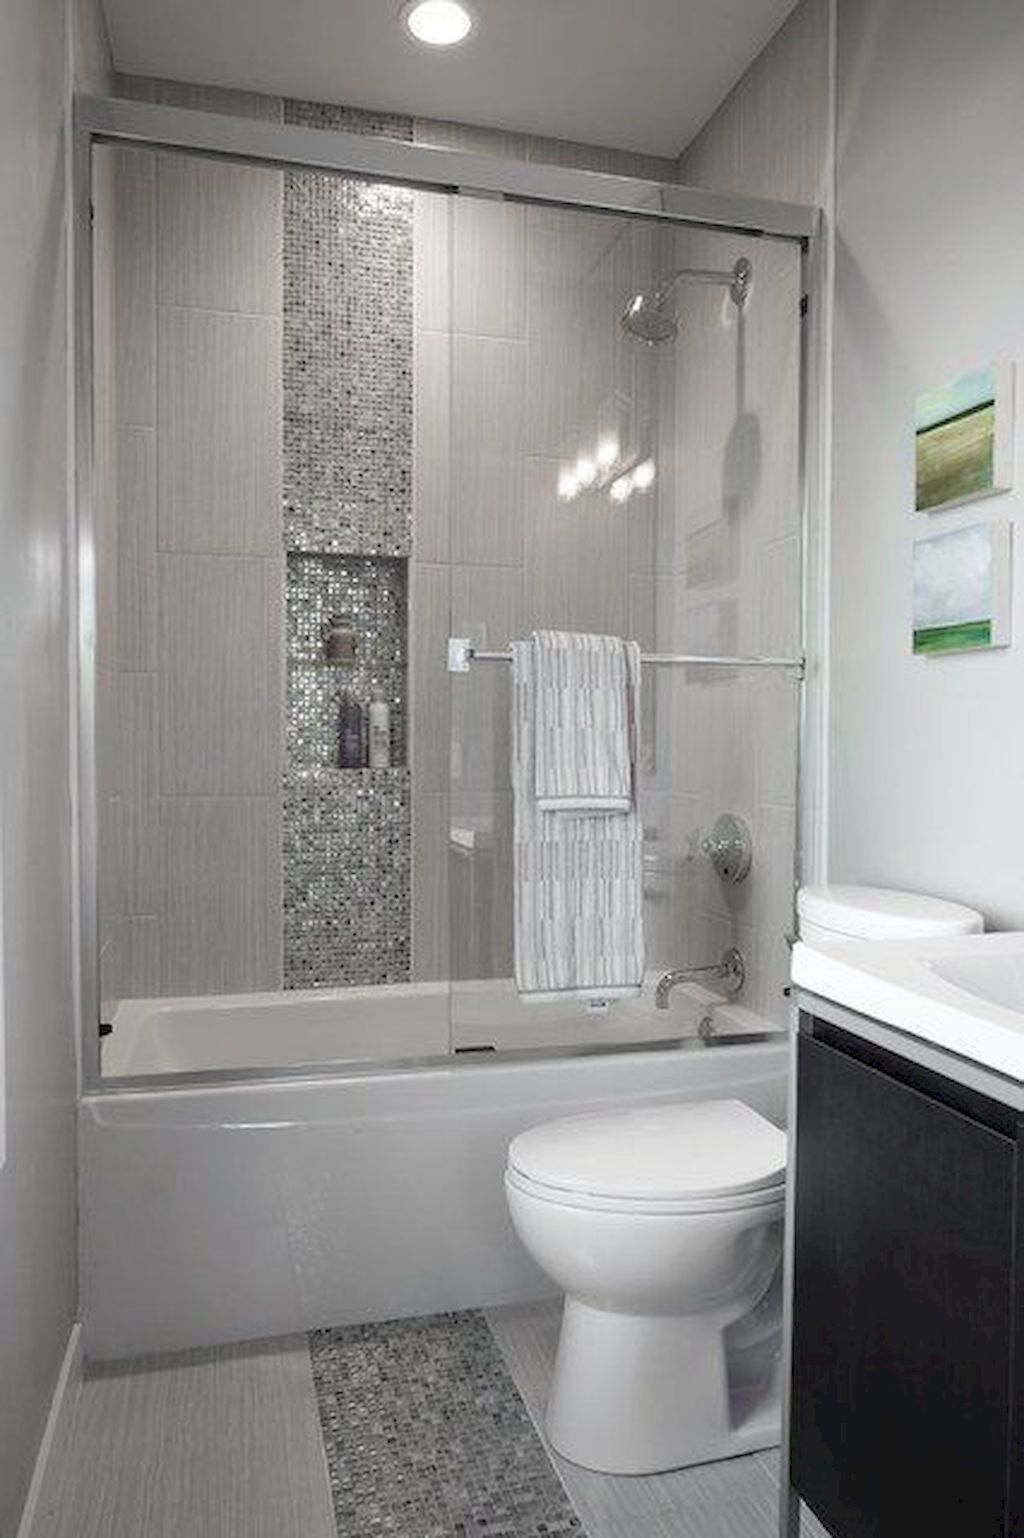 simple and low cost remodelling a small bathroom ideas in on bathroom renovation ideas 2020 id=50497